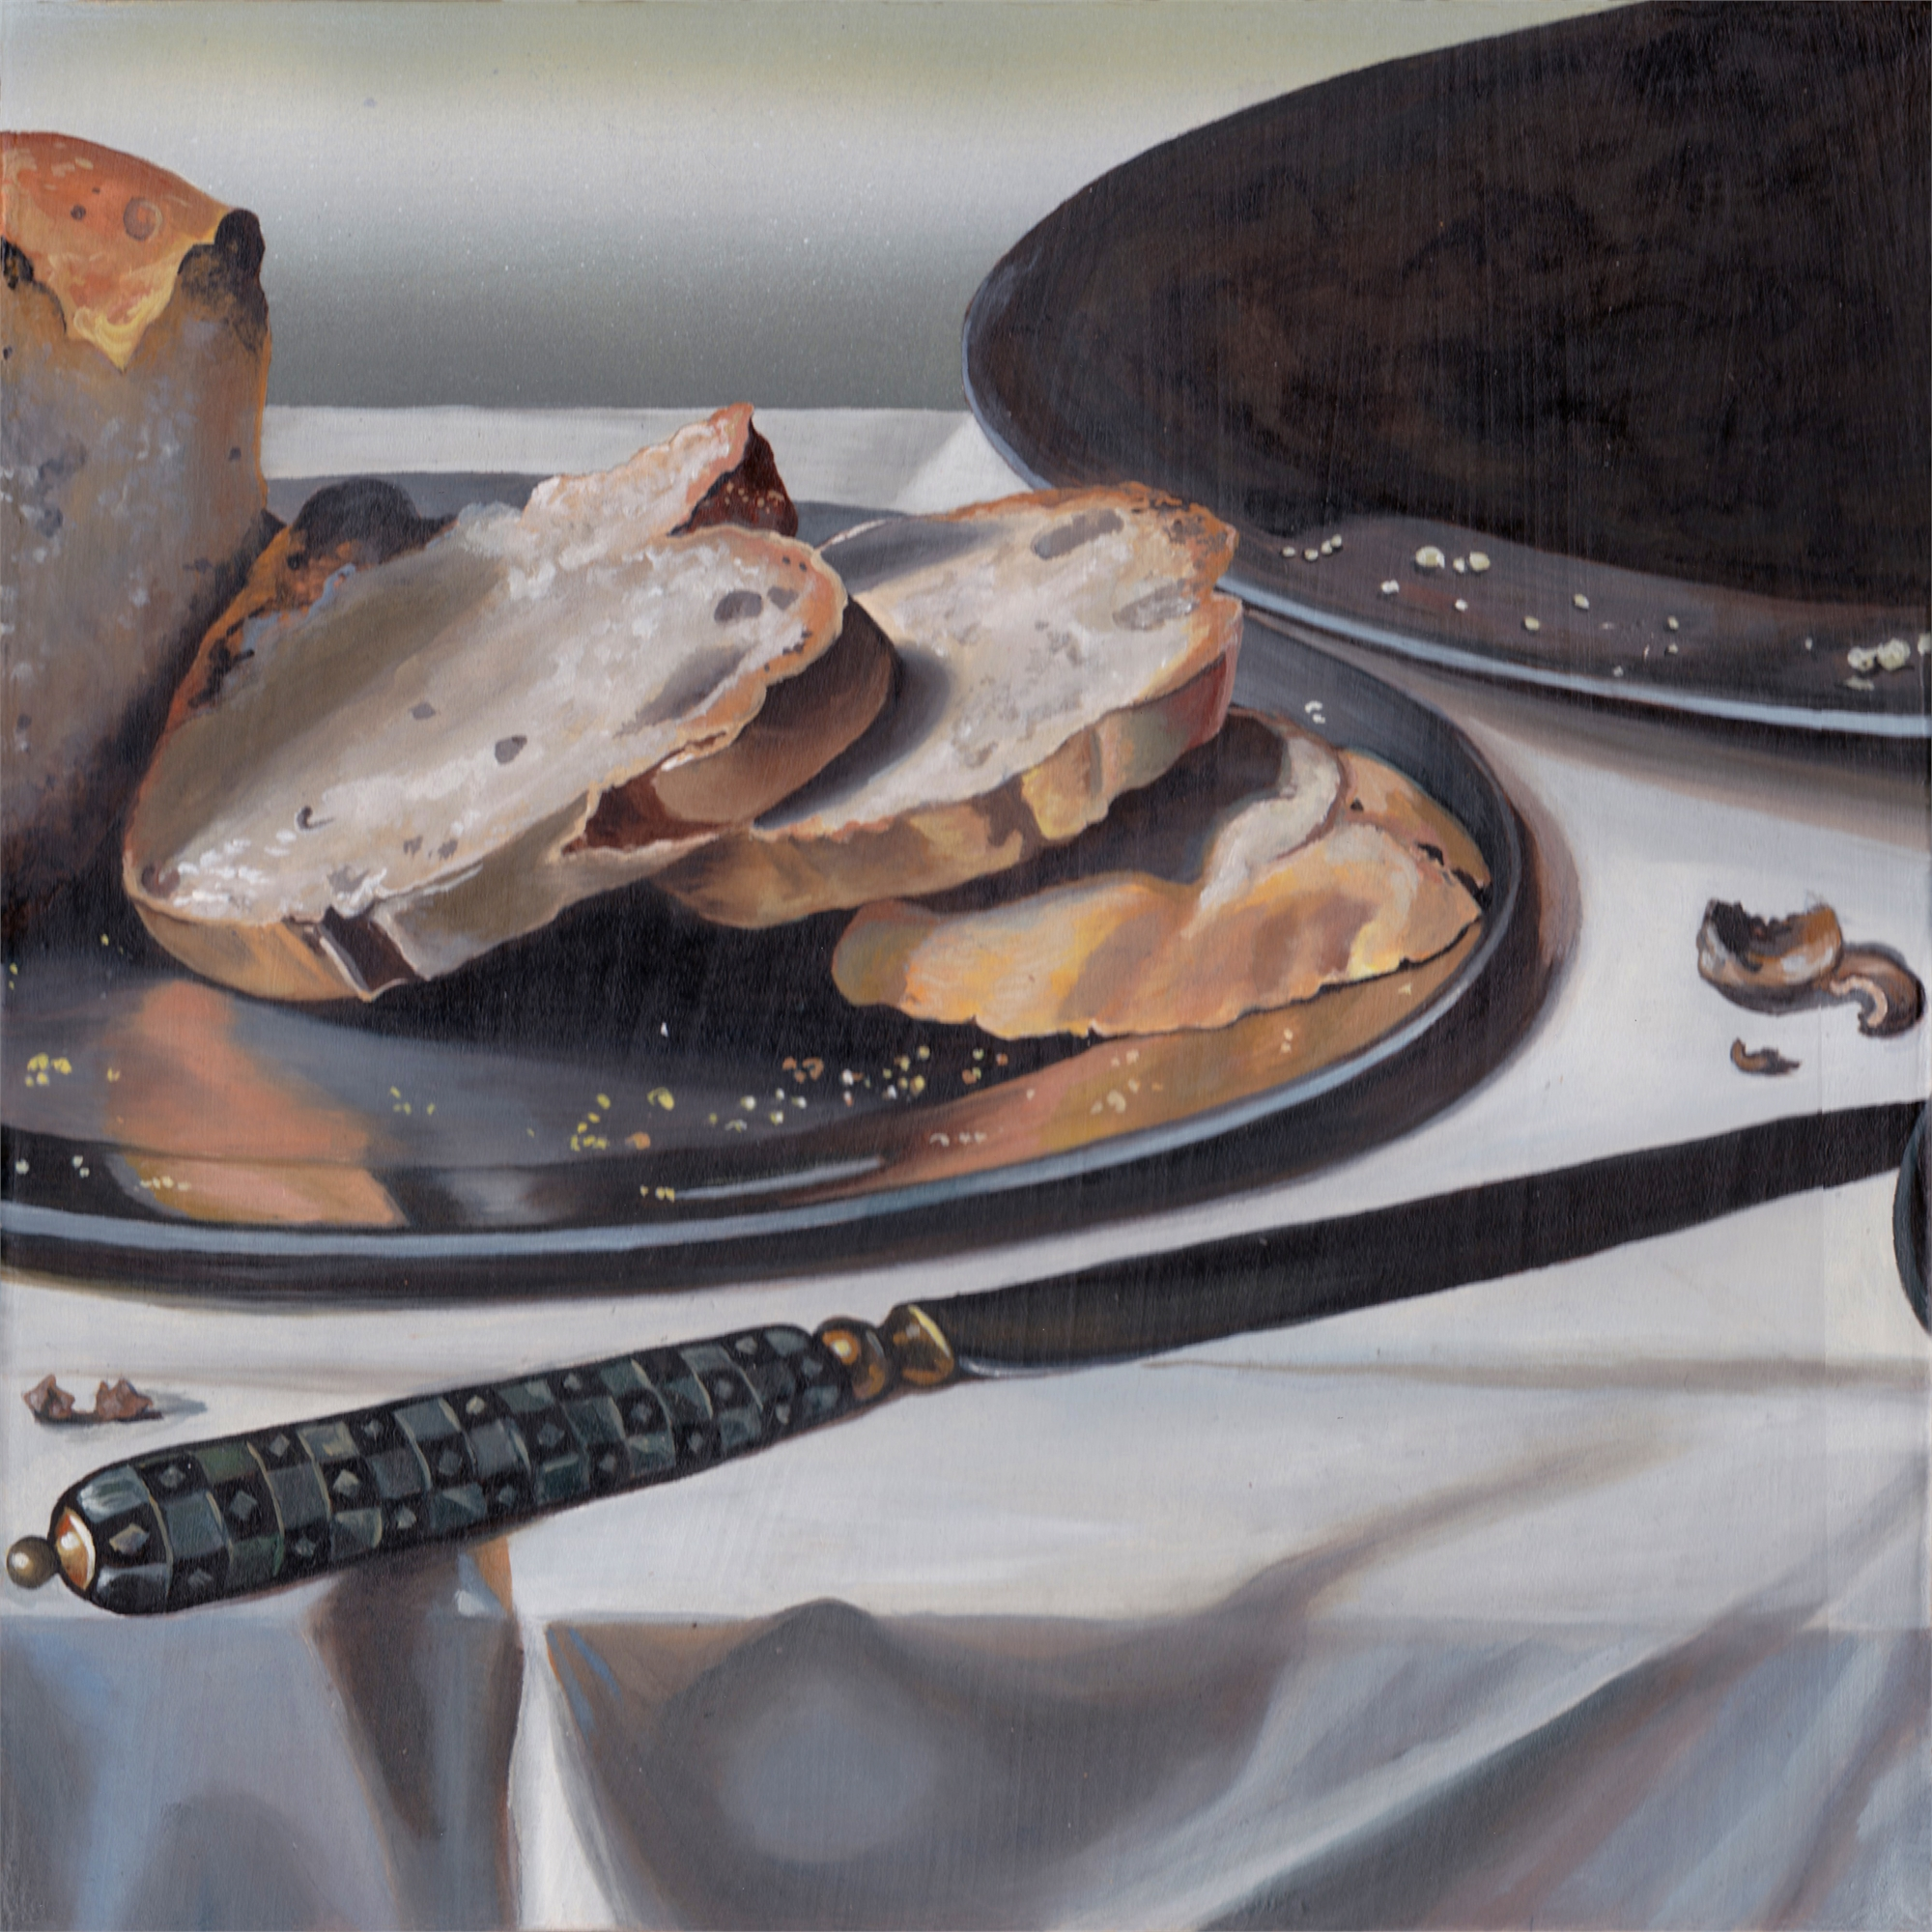 Bread always falls on the buttered side by Melissa Furness